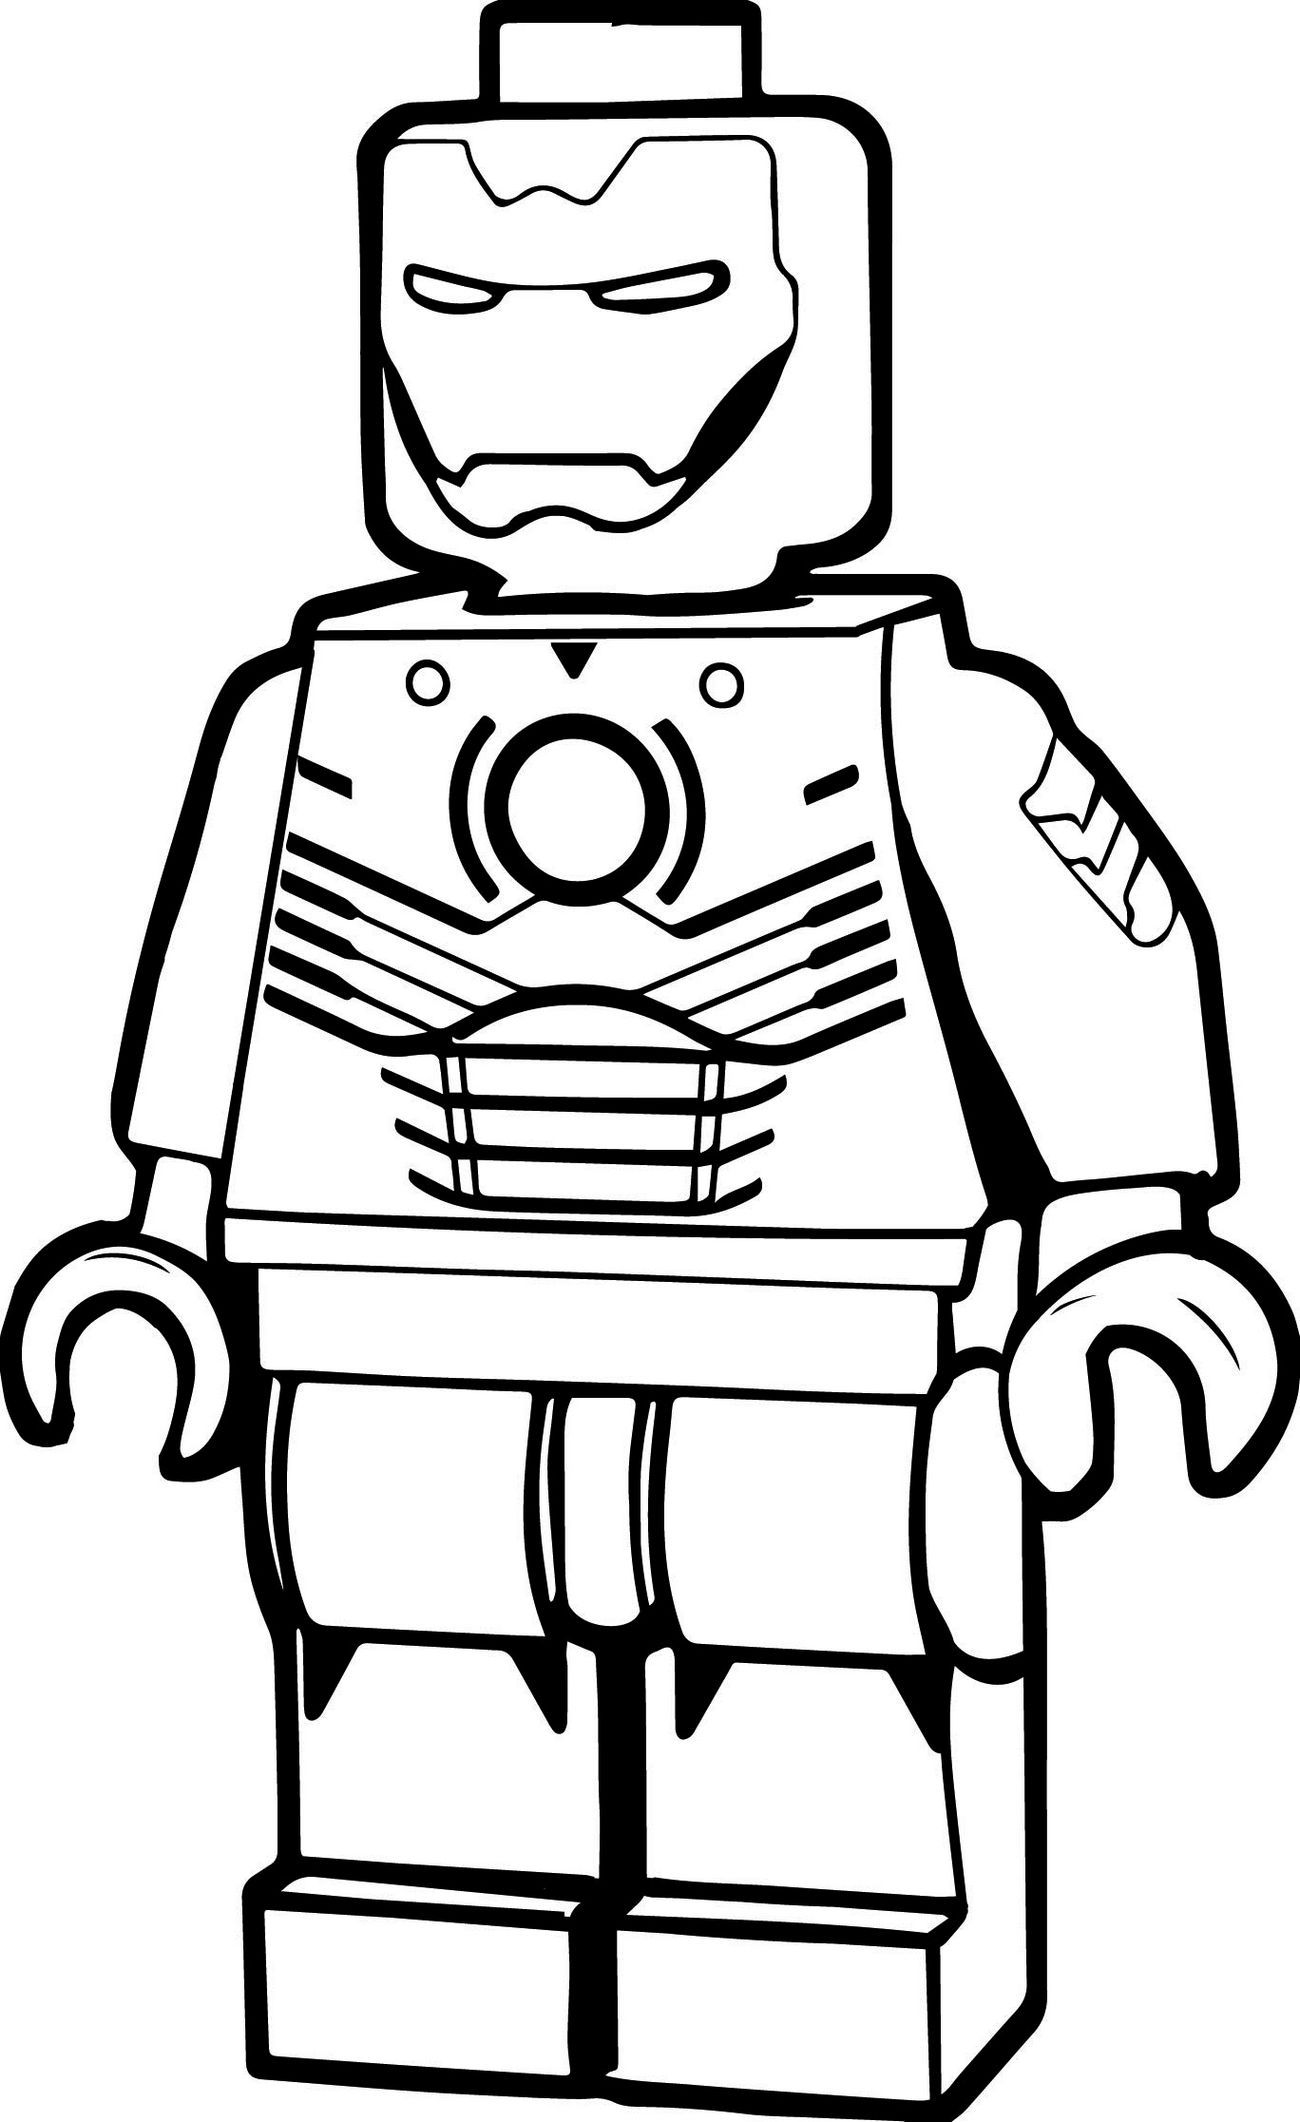 iron man lego coloring pages lego iron man coloring pages coloring home lego pages man iron coloring